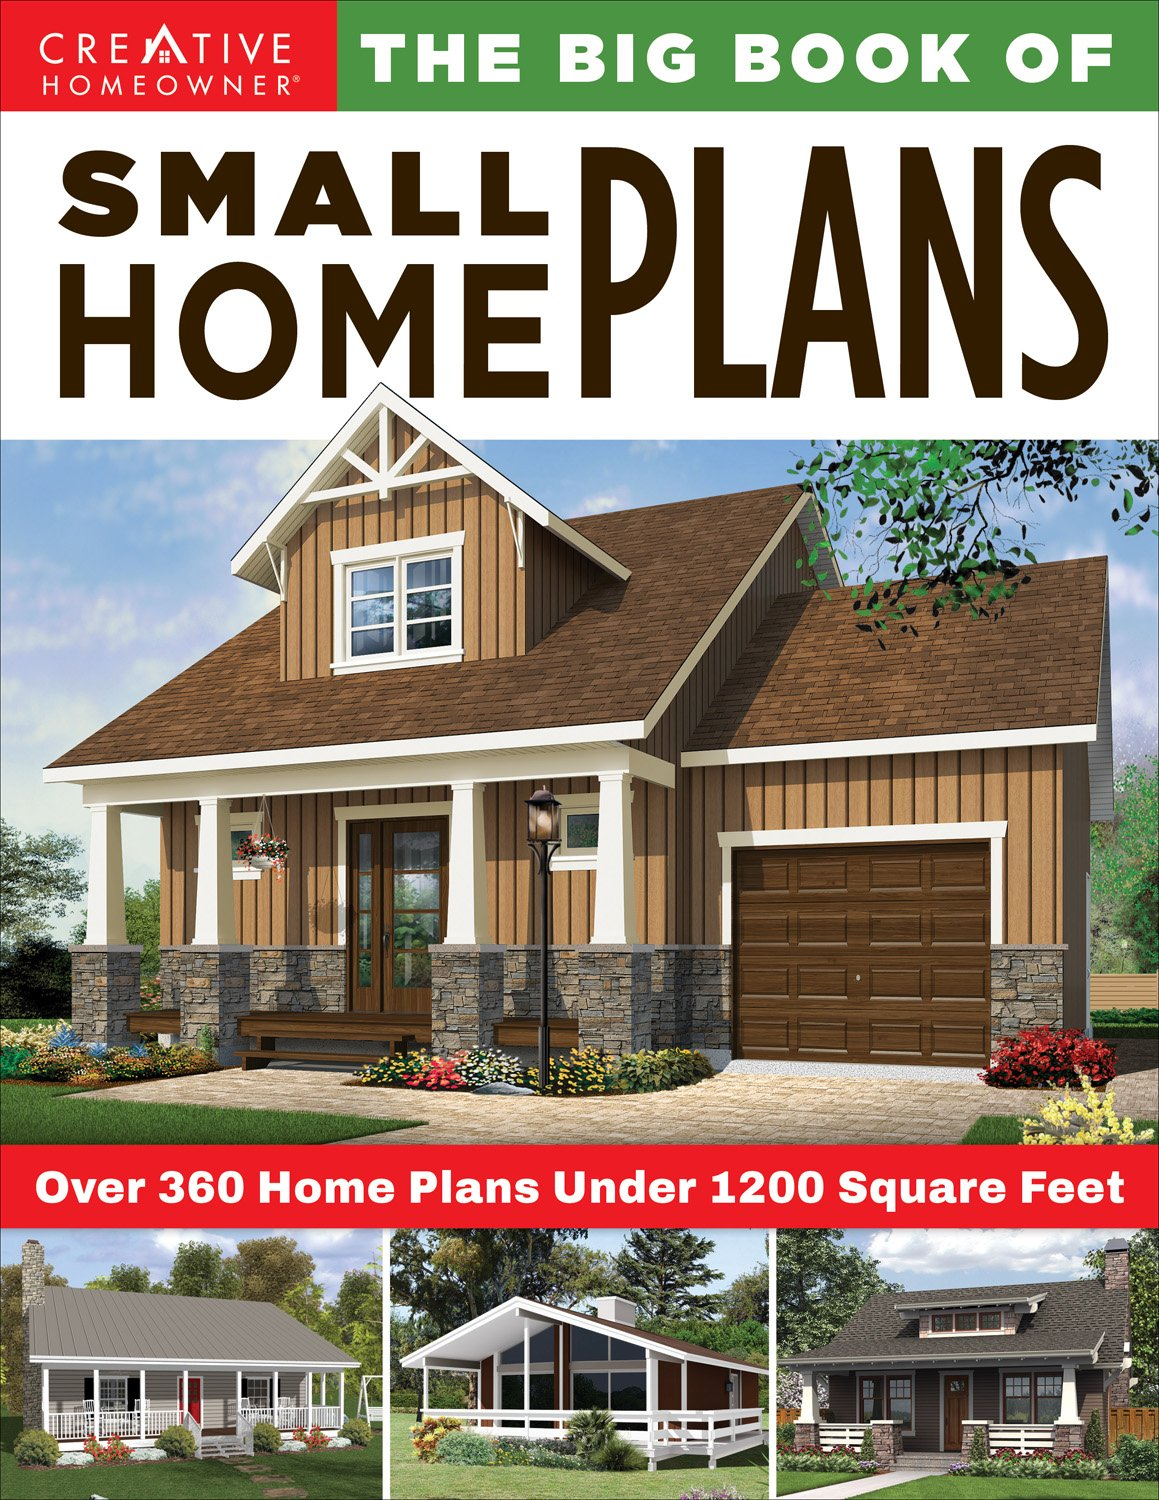 The Big Book of Small Home Plans: Over 360 Home Plans Under ... Tiny House Plans Under Sq Ft on